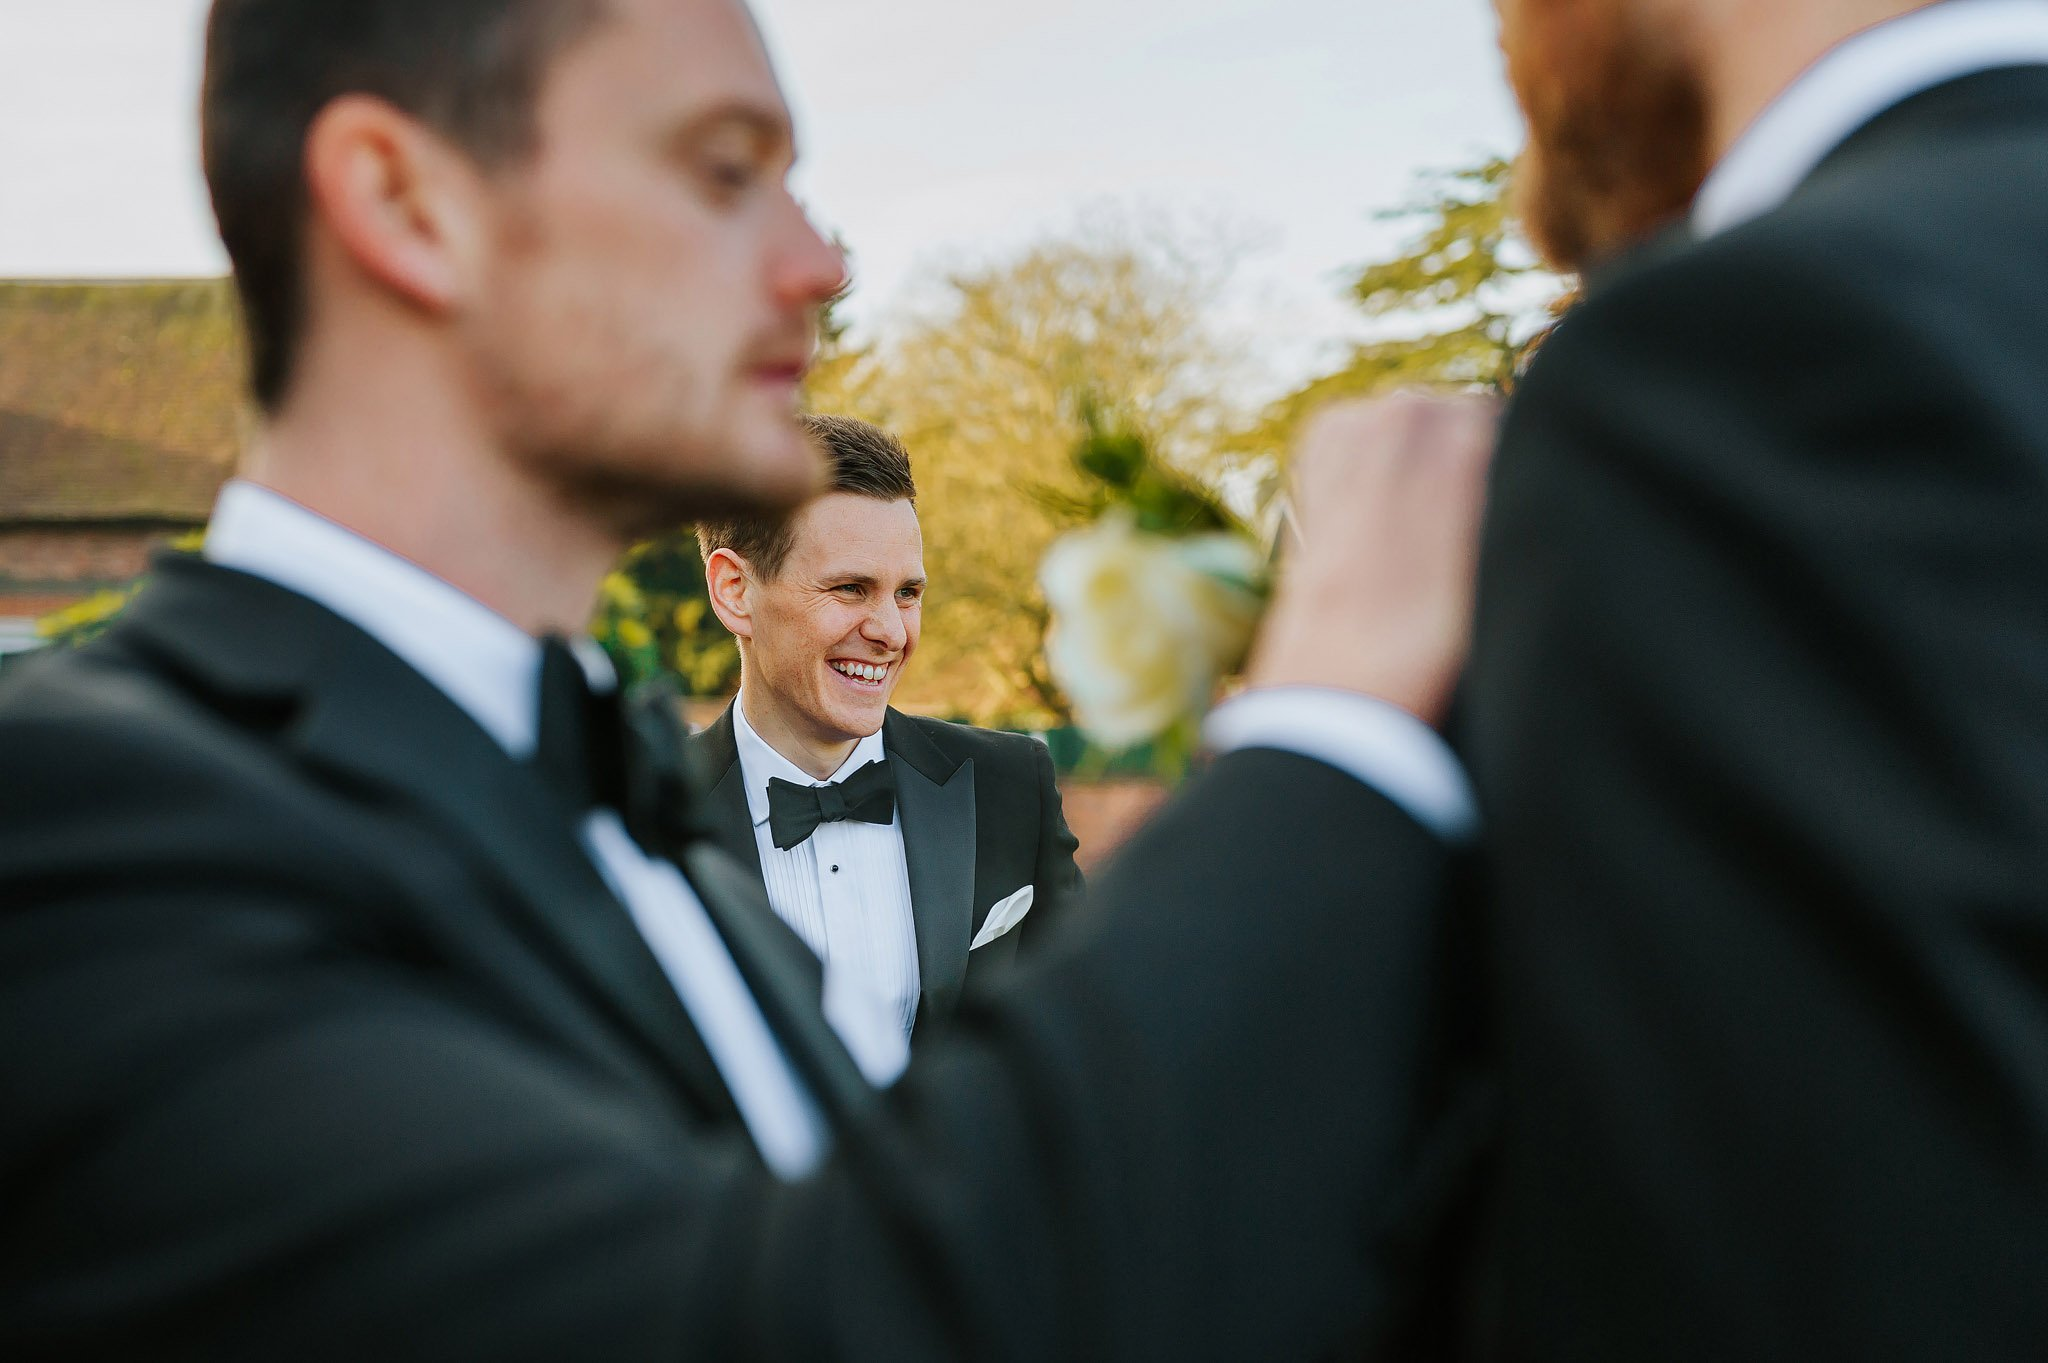 coombe abbey wedding coventry 34 - Coombe Abbey wedding in Coventry, Warwickshire - Sam + Matt